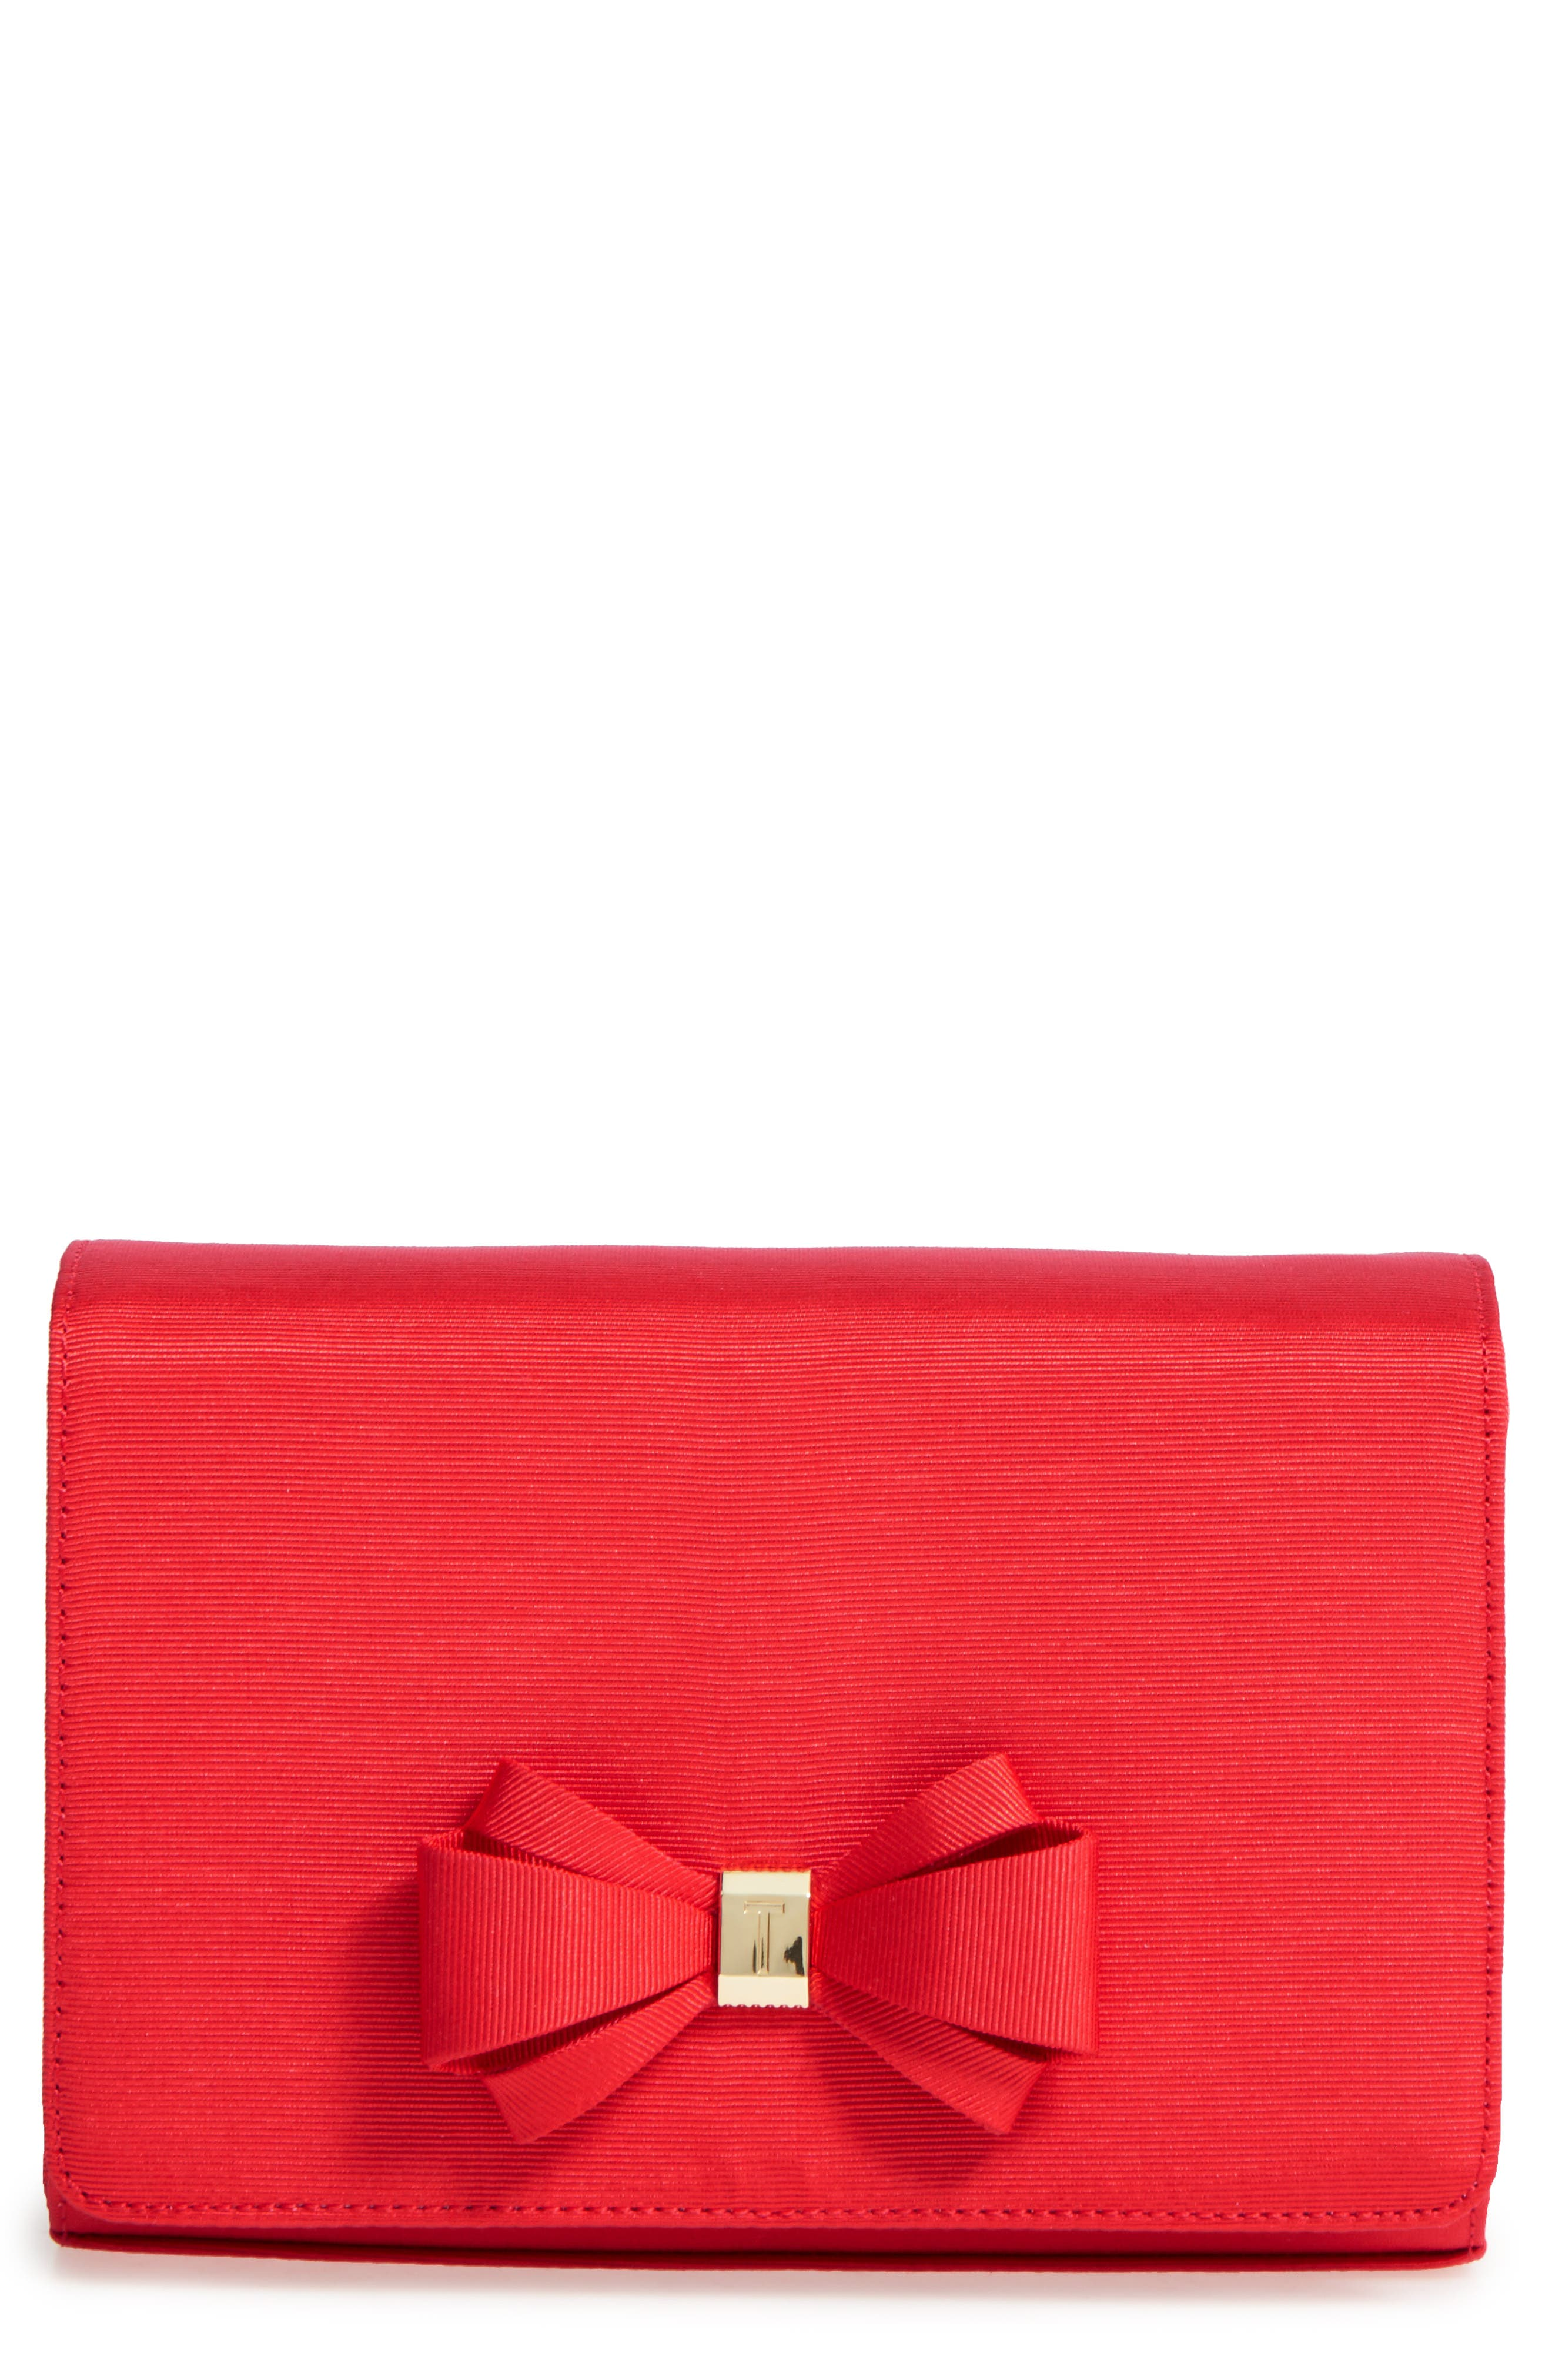 Main Image - Ted Baker London Grosgrain Clutch